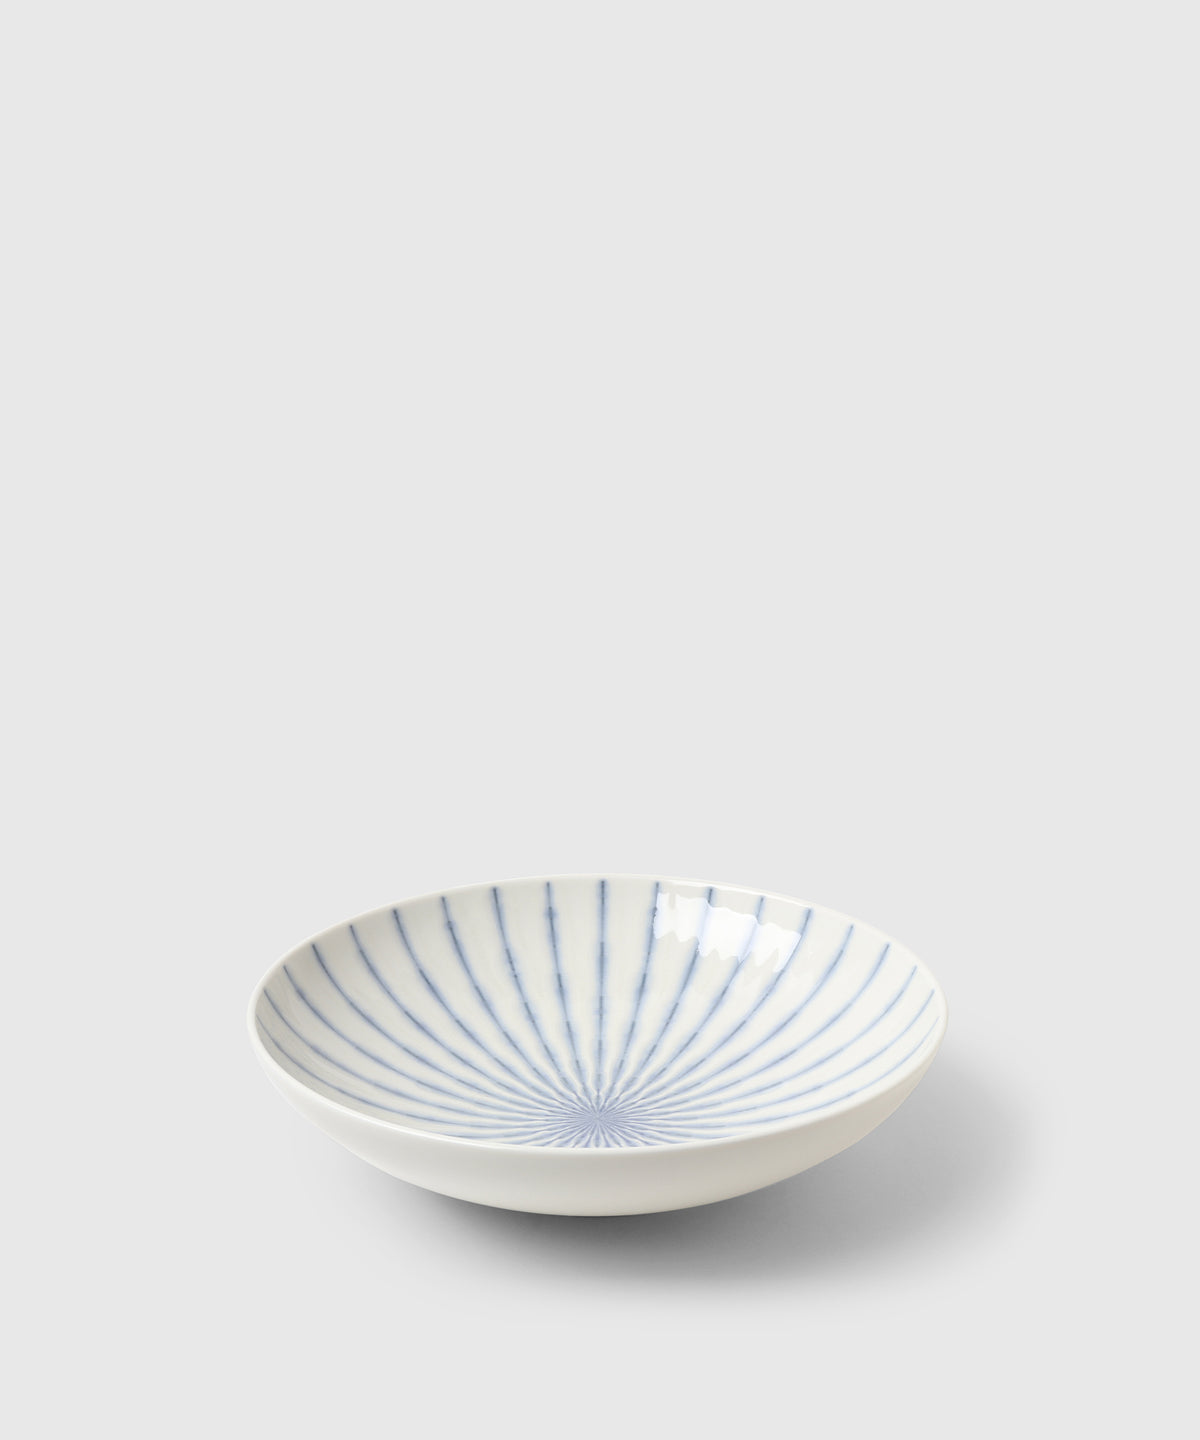 Japanese Family-Style Serving Bowl